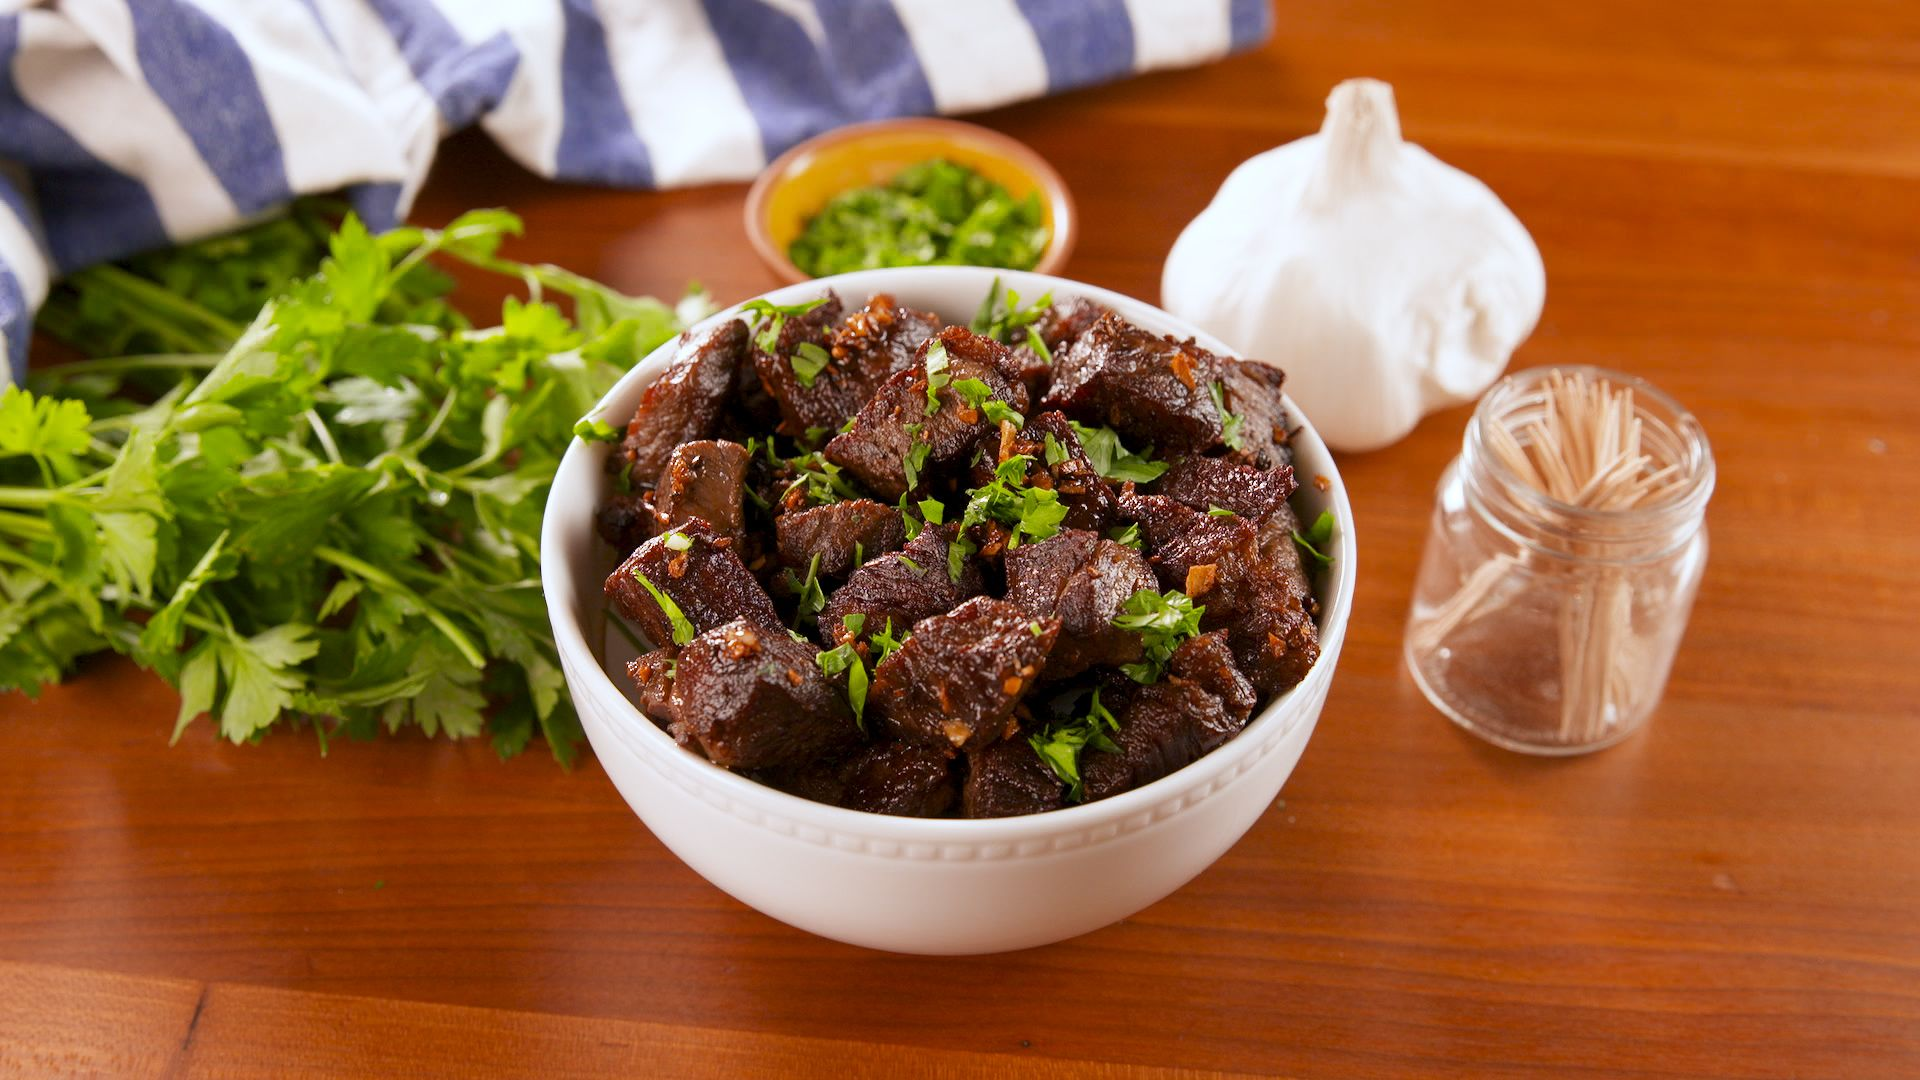 Sightly Butter Fast Meal Plan Beef Garlic Butter Steak Bites Recipe How To Make Garlic Butter Steakbites Garlic Butter Steak Bites Recipe How To Make Garlic Butter Beef Butter Fast Recipes nice food Beef And Butter Fast